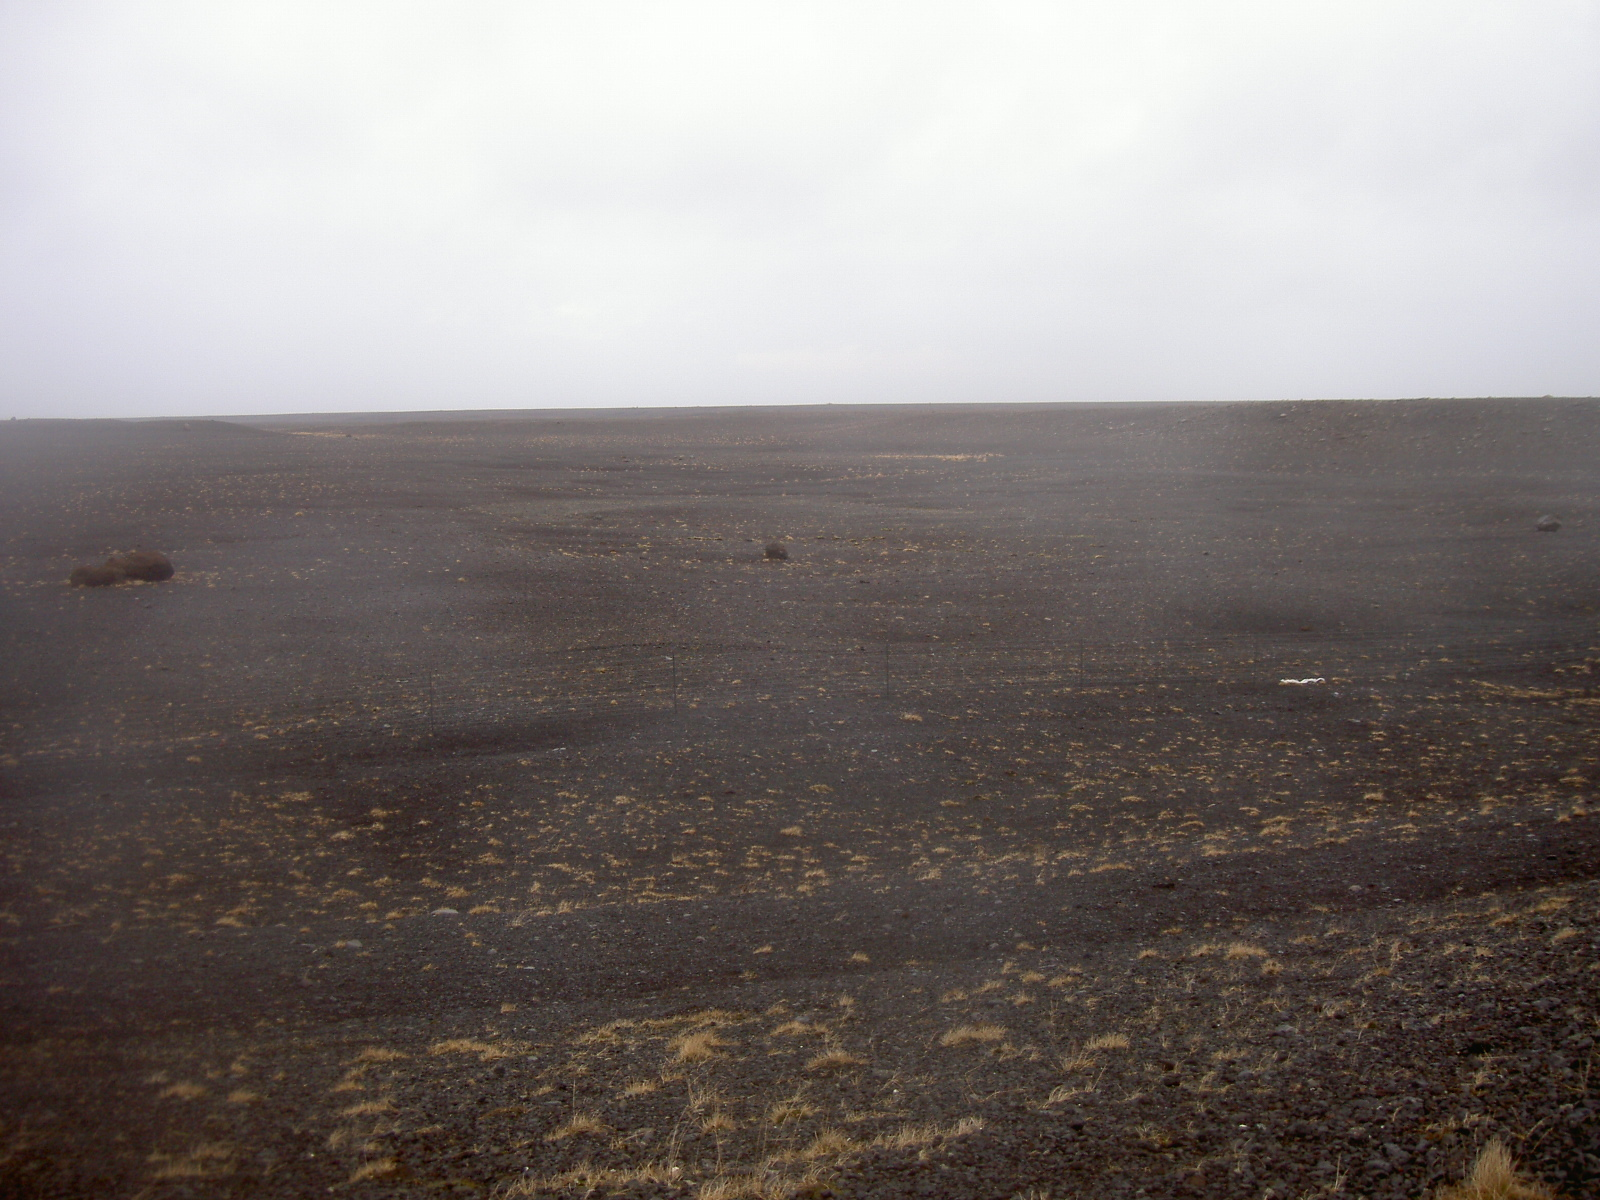 Glacier influenced landscape in South Iceland (purpose of page is to display an image)